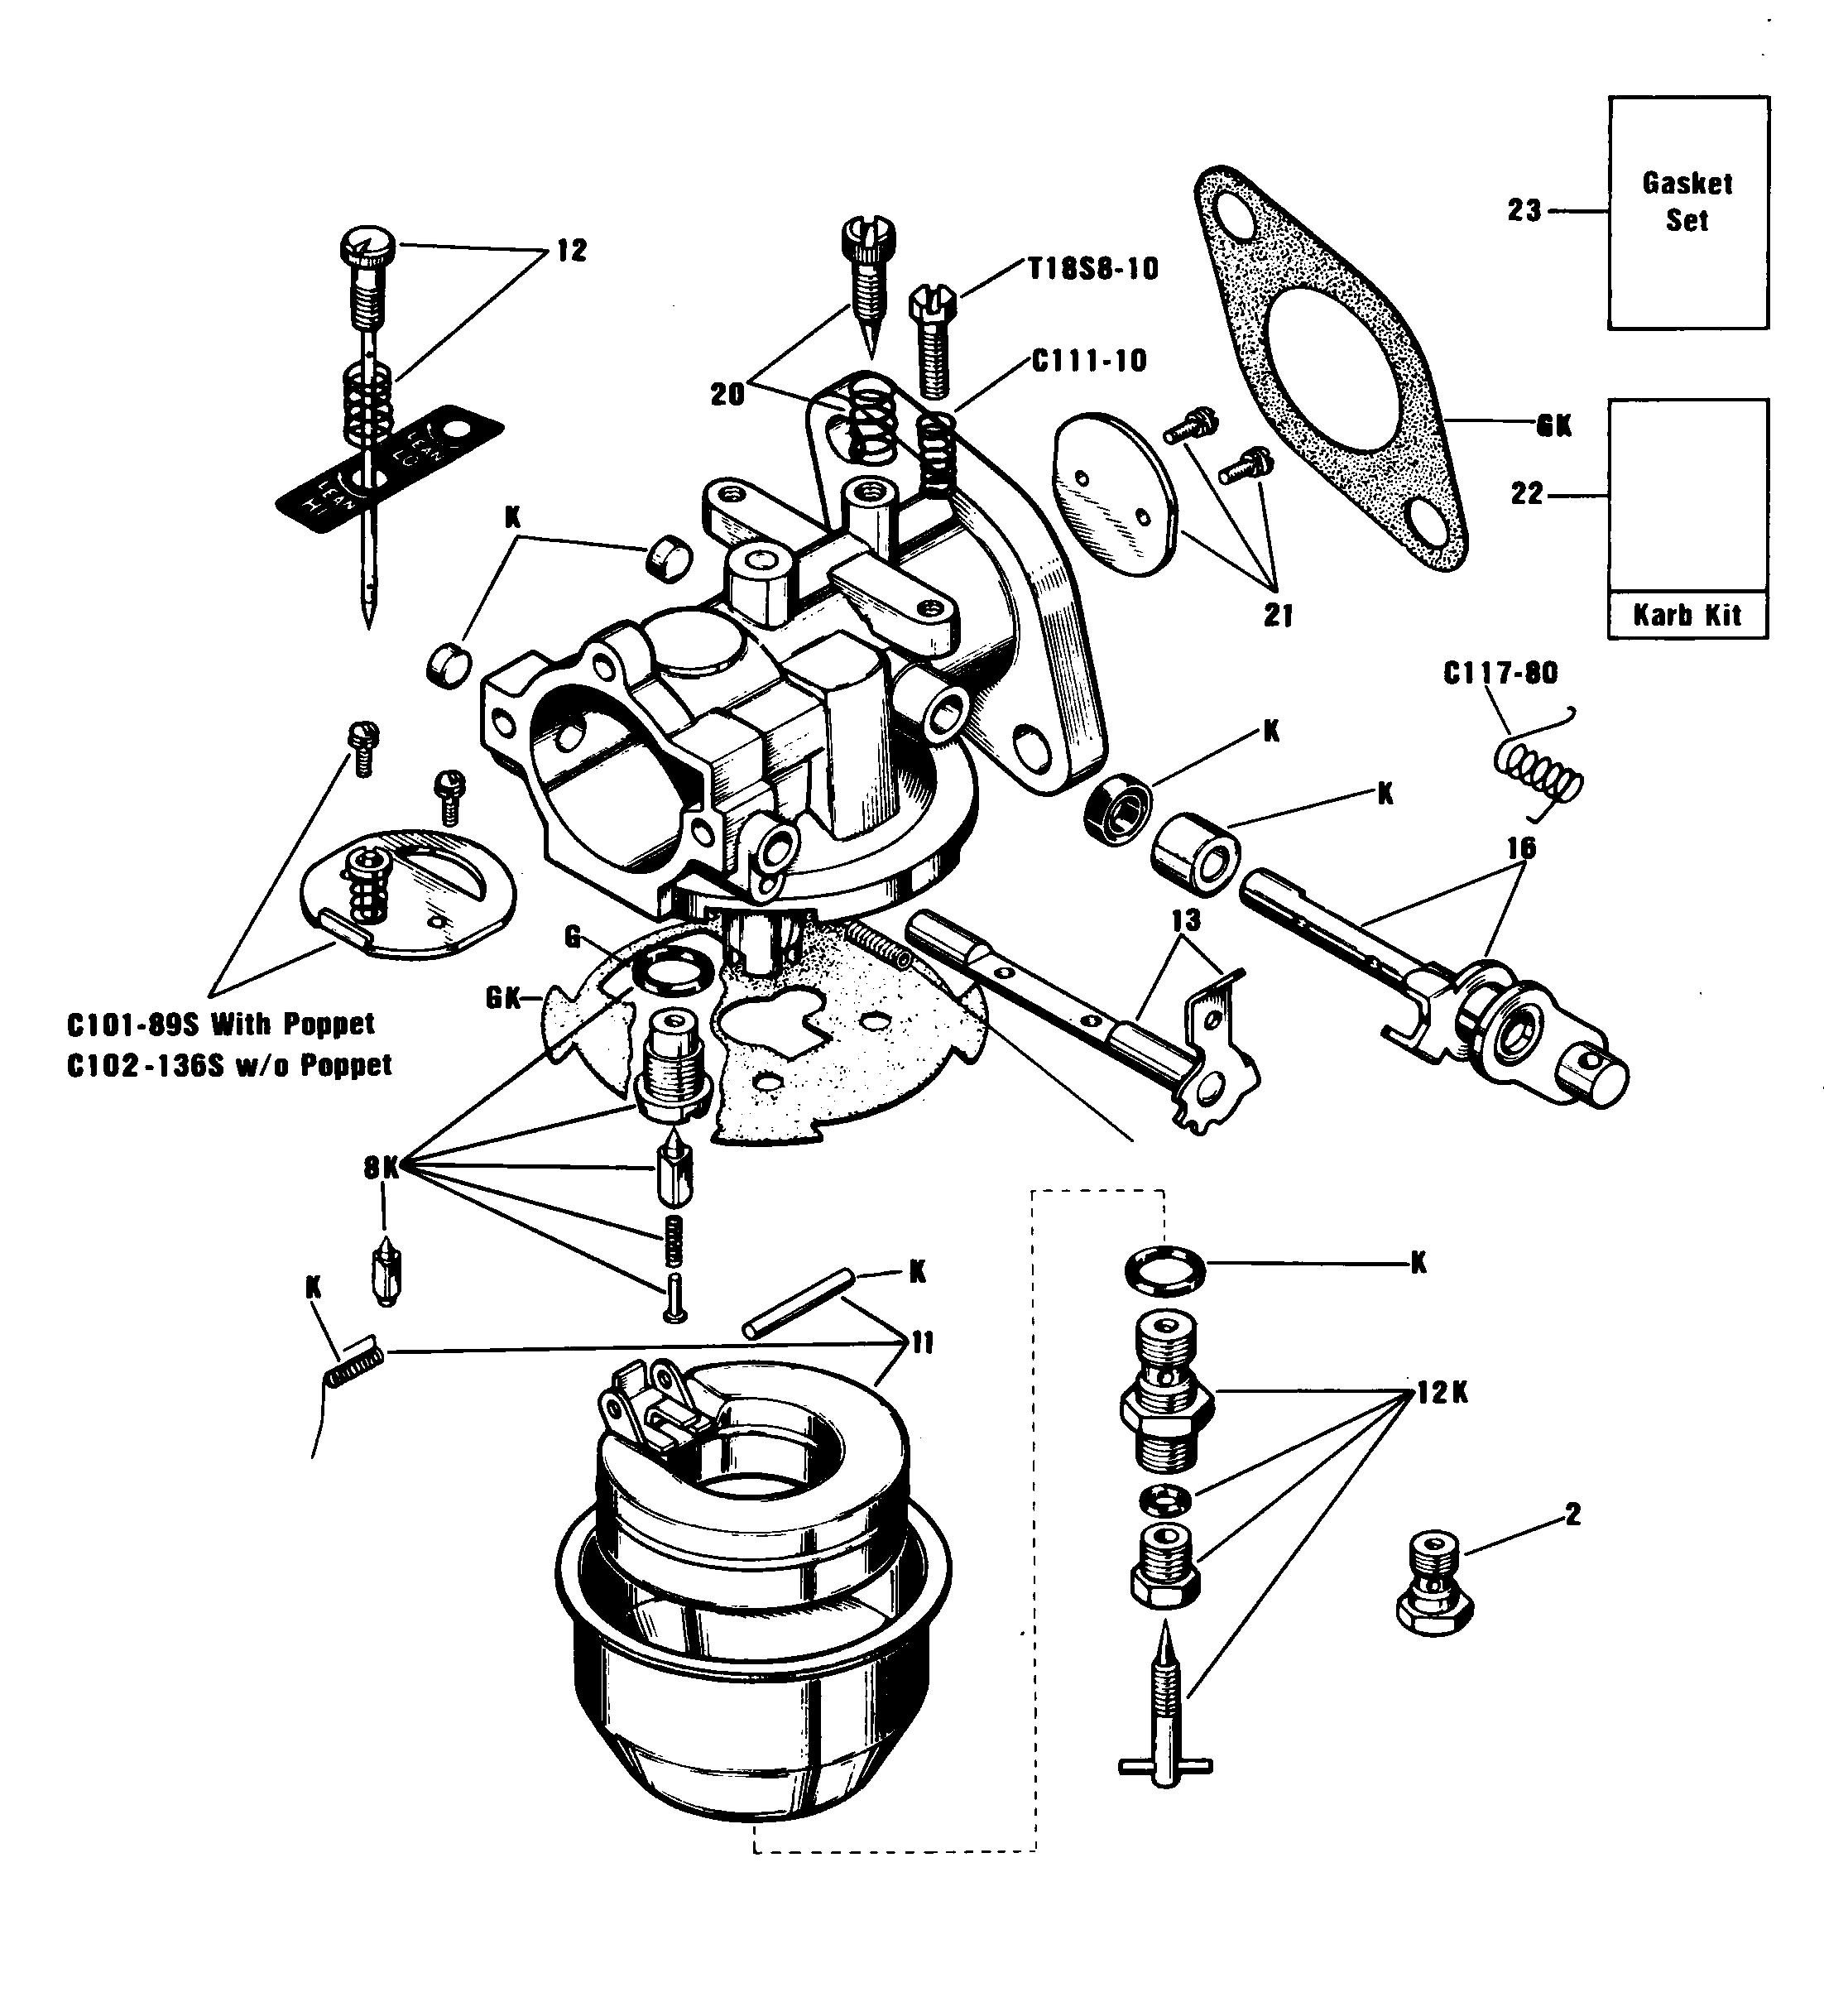 Zenith carburetors diagrams free download wiring diagrams schematics zenith 13656 carburetor kit float and manual for zenith carburetors rebuild diagrams zenith propane carburetor ccuart Image collections